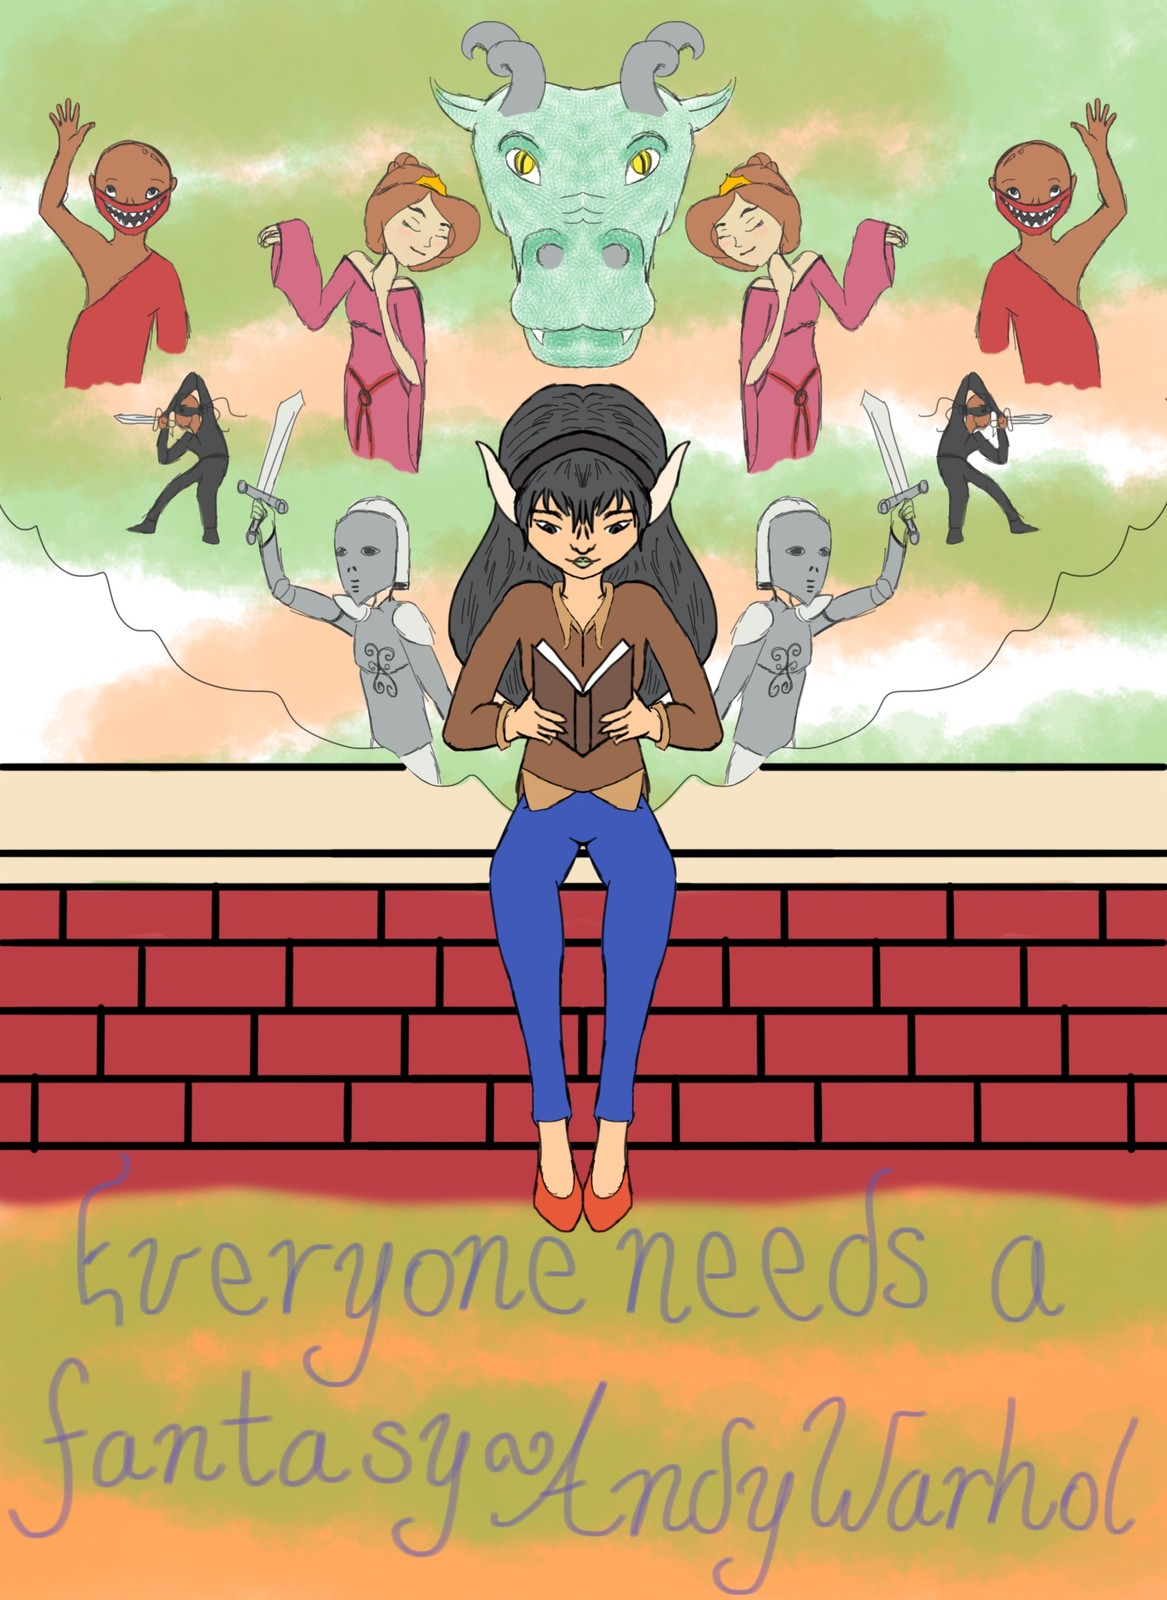 Making a Difference Poster (Propaganda poster?) Theme: Reading